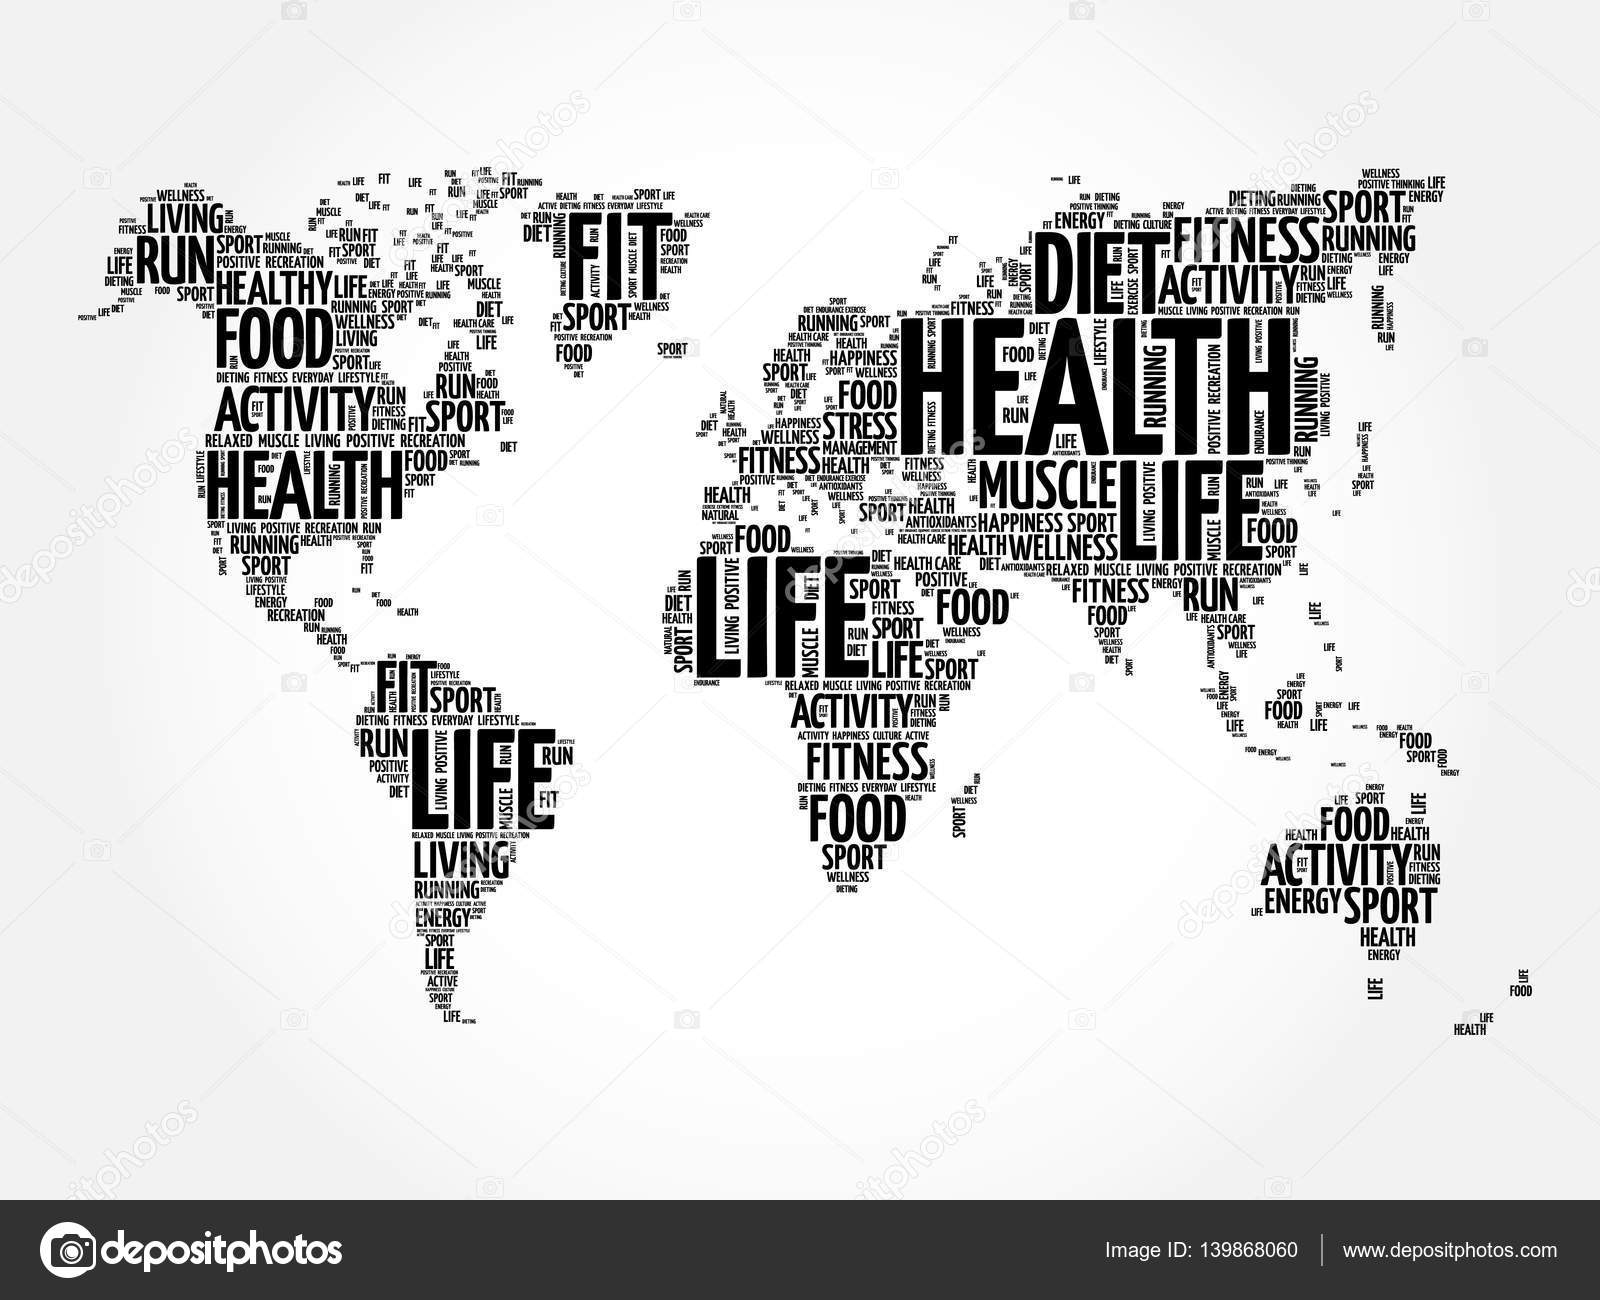 Health and life world map in typography stock vector dizanna health and life world map in typography stock vector 139868060 gumiabroncs Choice Image